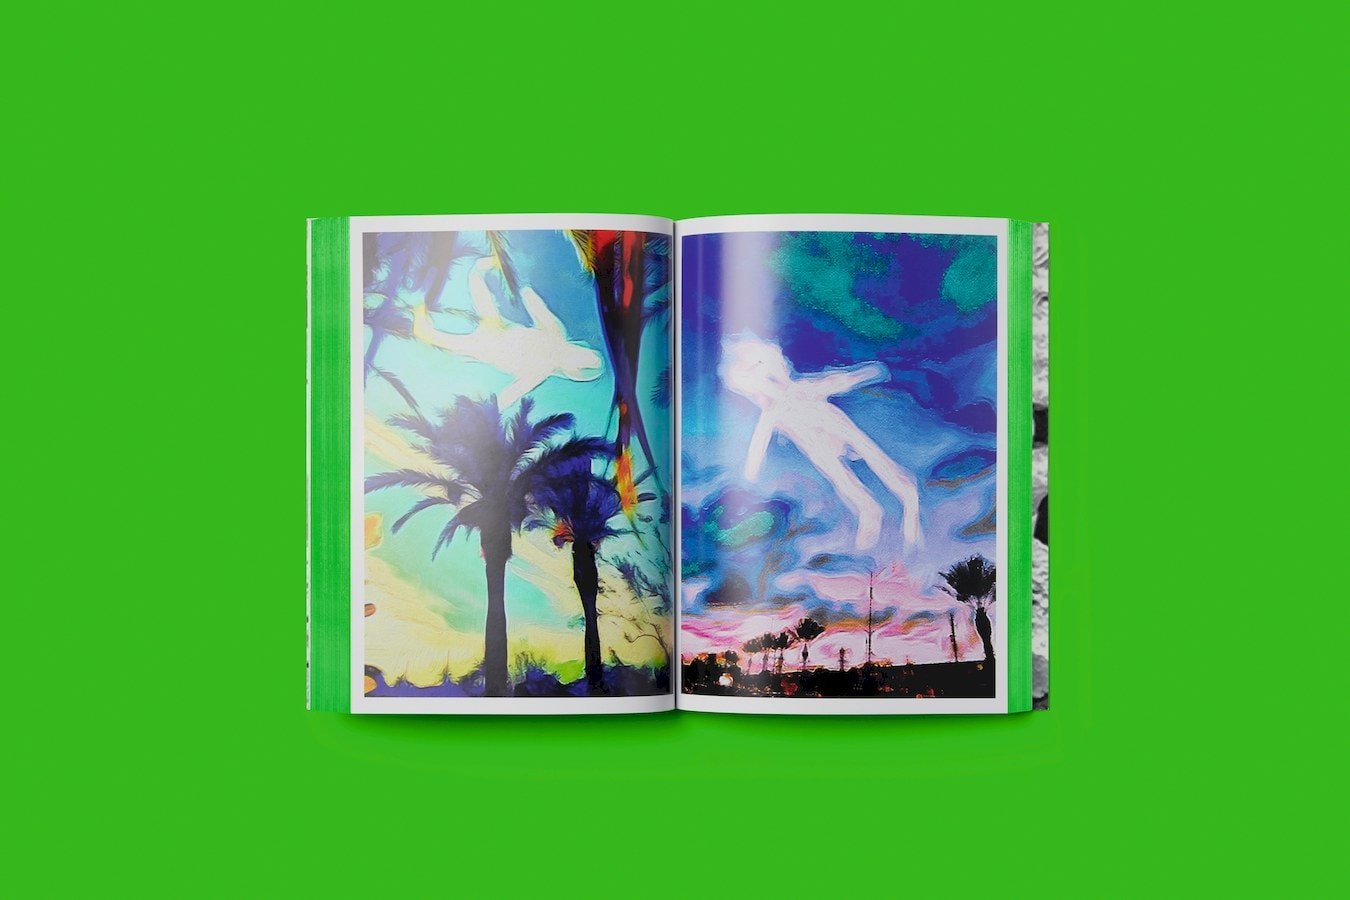 Gucci released a limited edition photo-book by Harmony Korine for its pre-fall collection